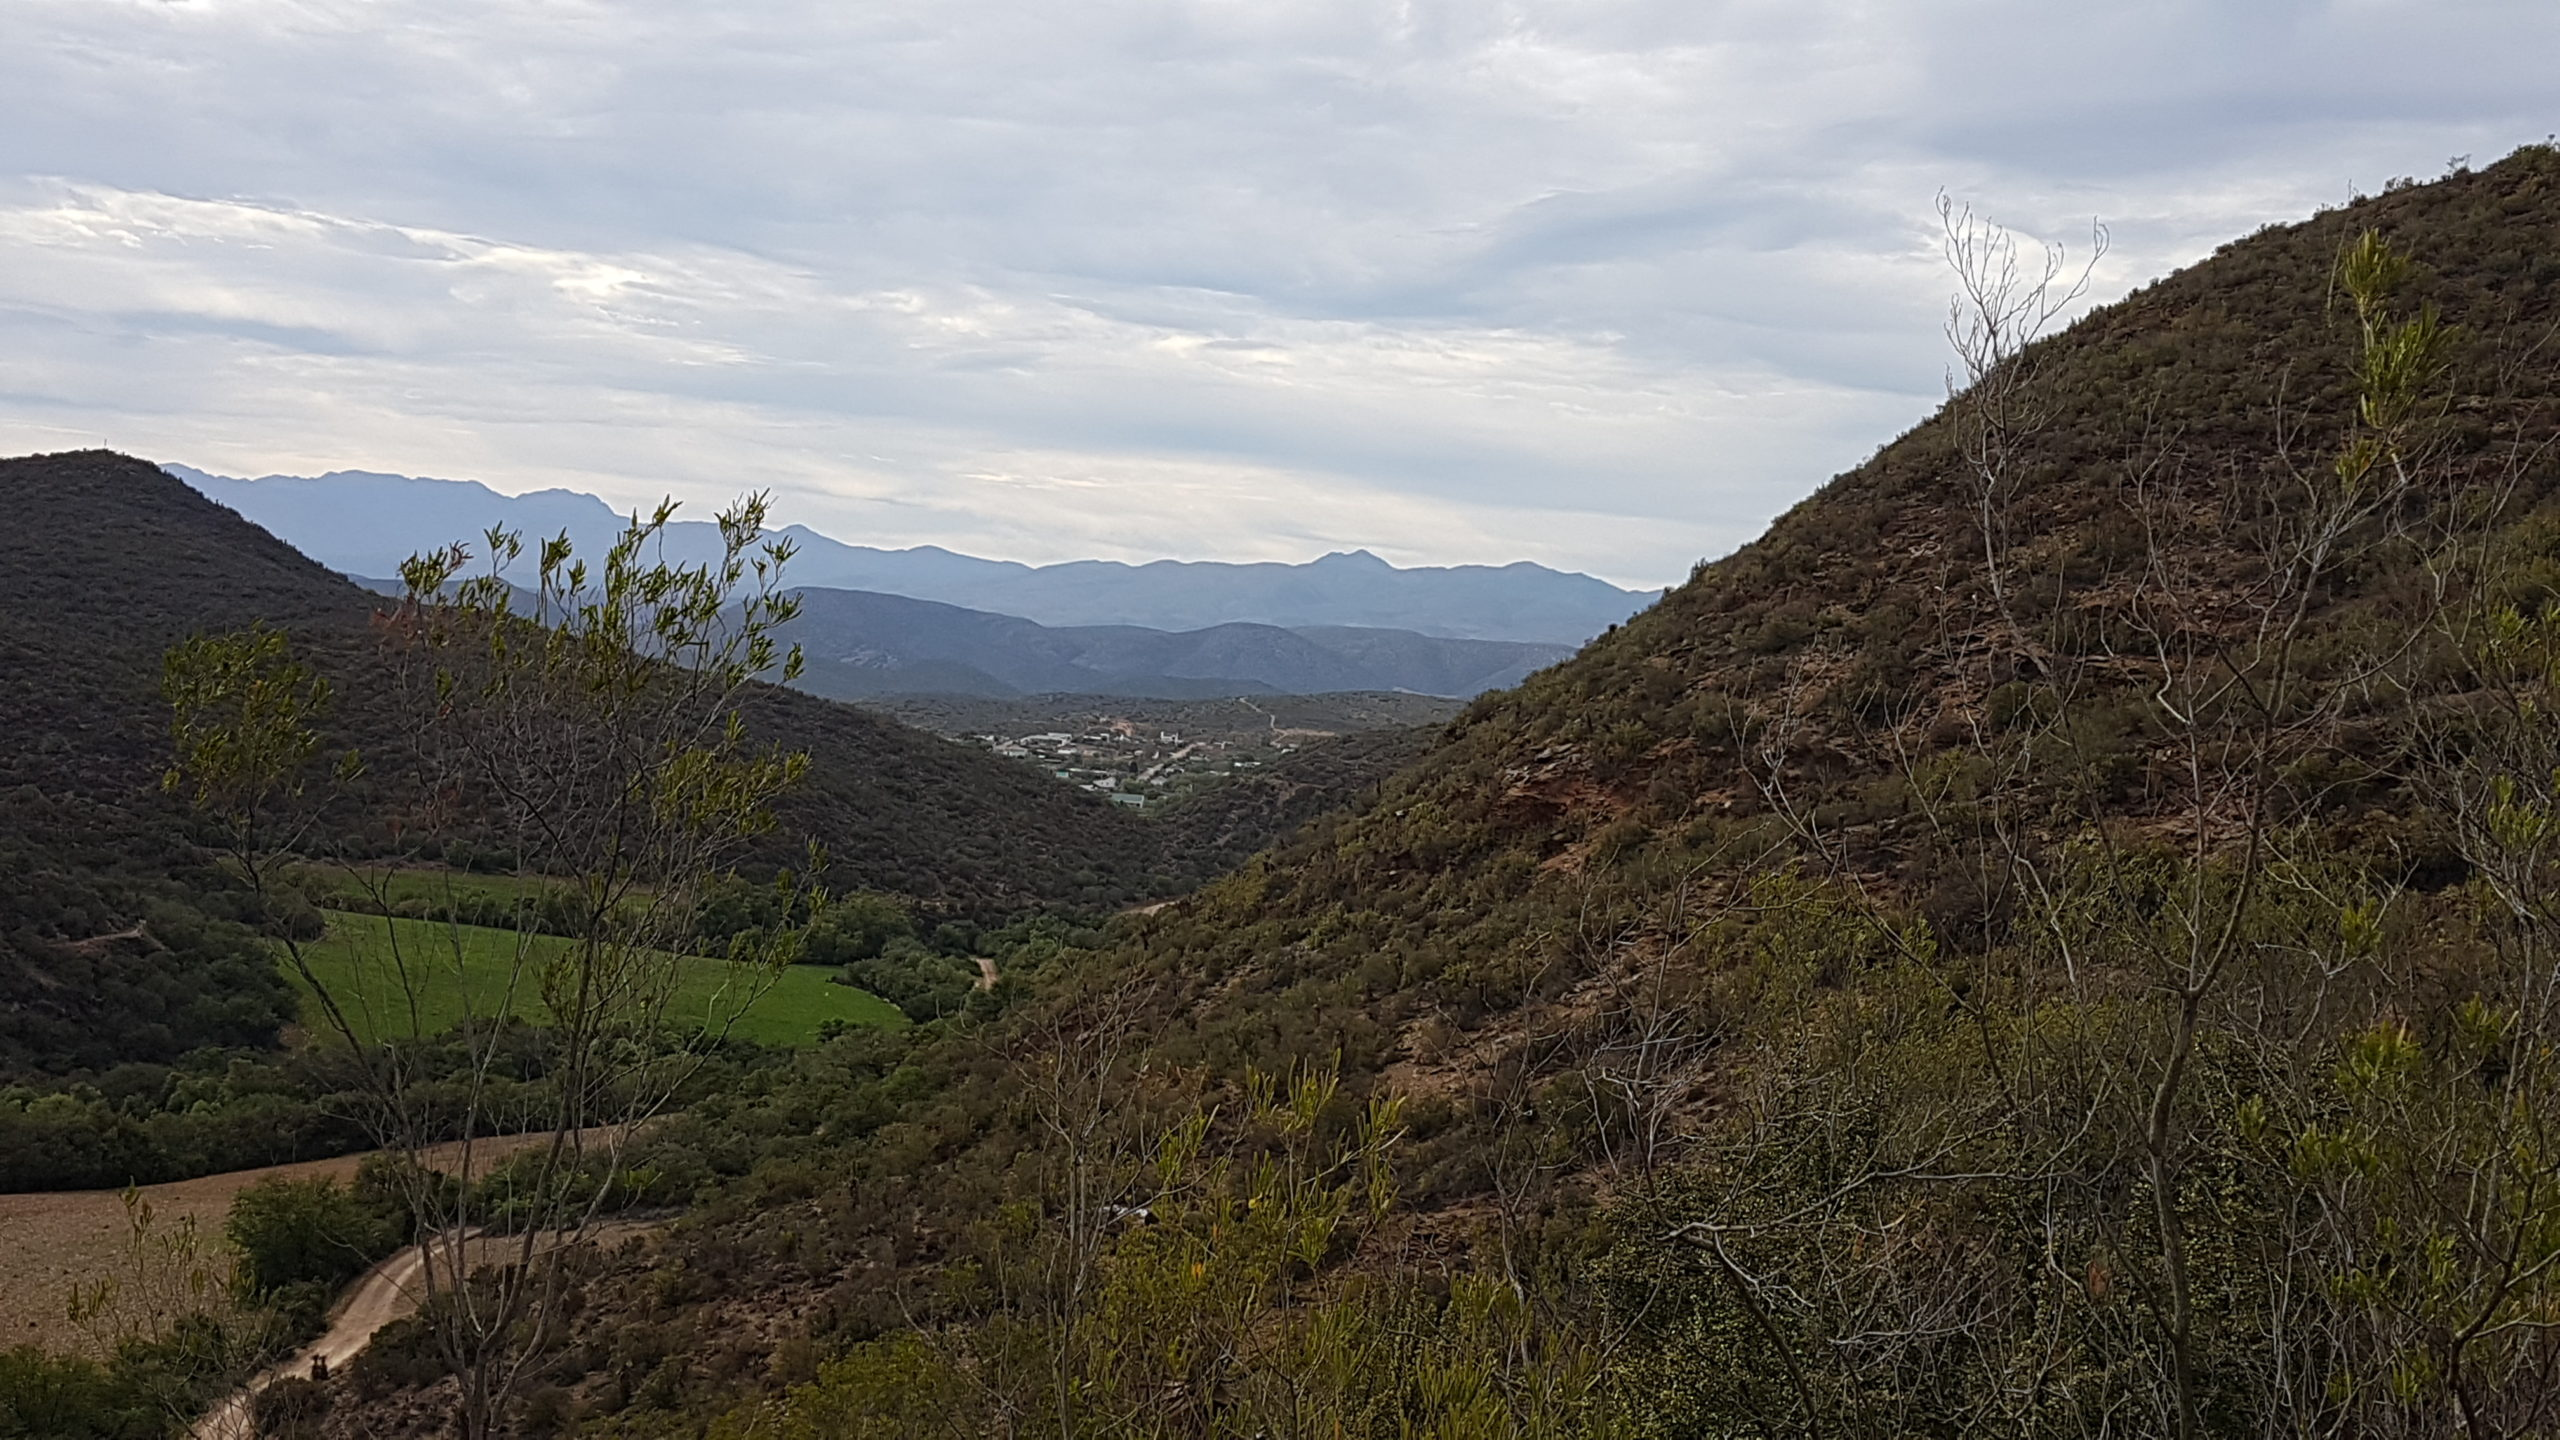 View from a Hike